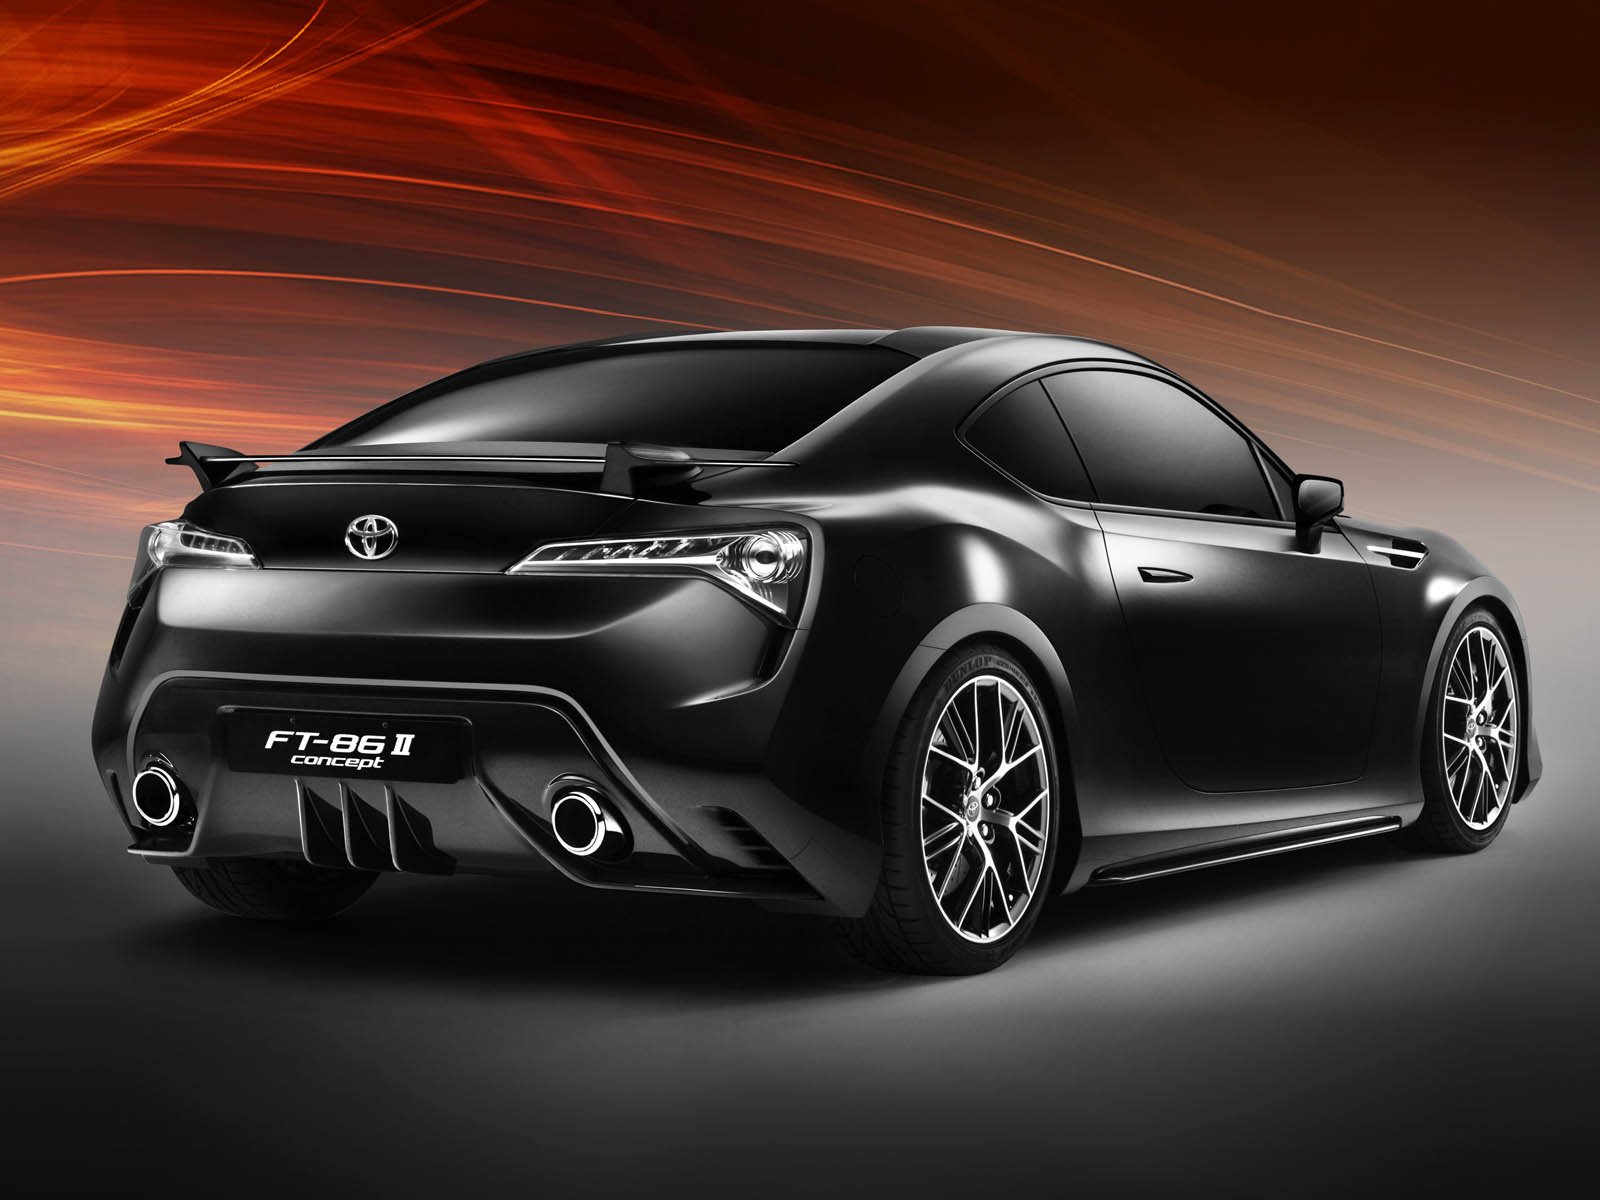 Superb 2012 Toyota FT86 Rear